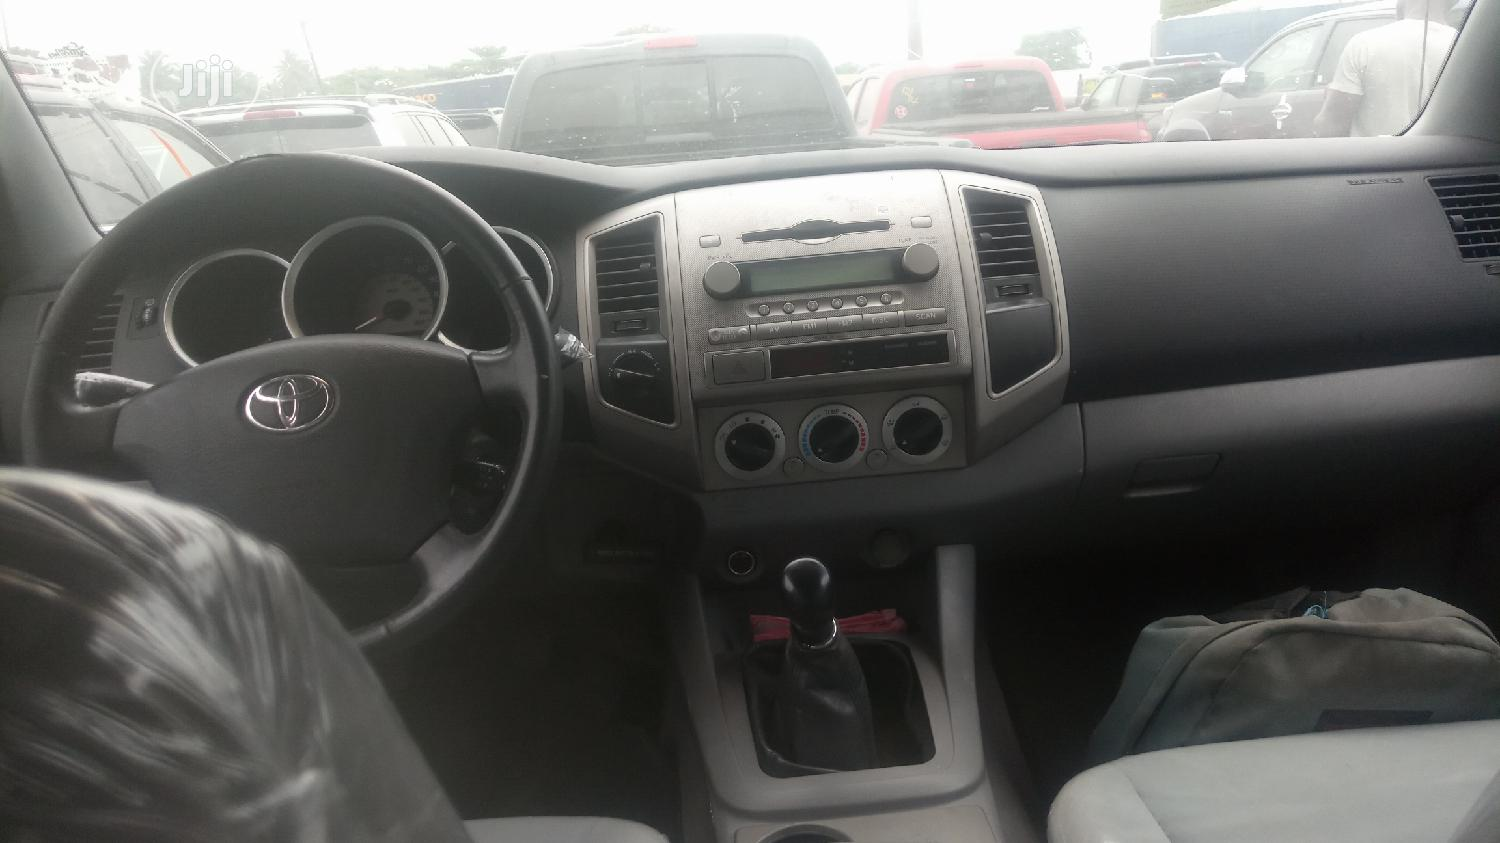 Toyota Tacoma 2005 Double Cab V6 4WD Silver | Cars for sale in Apapa, Lagos State, Nigeria